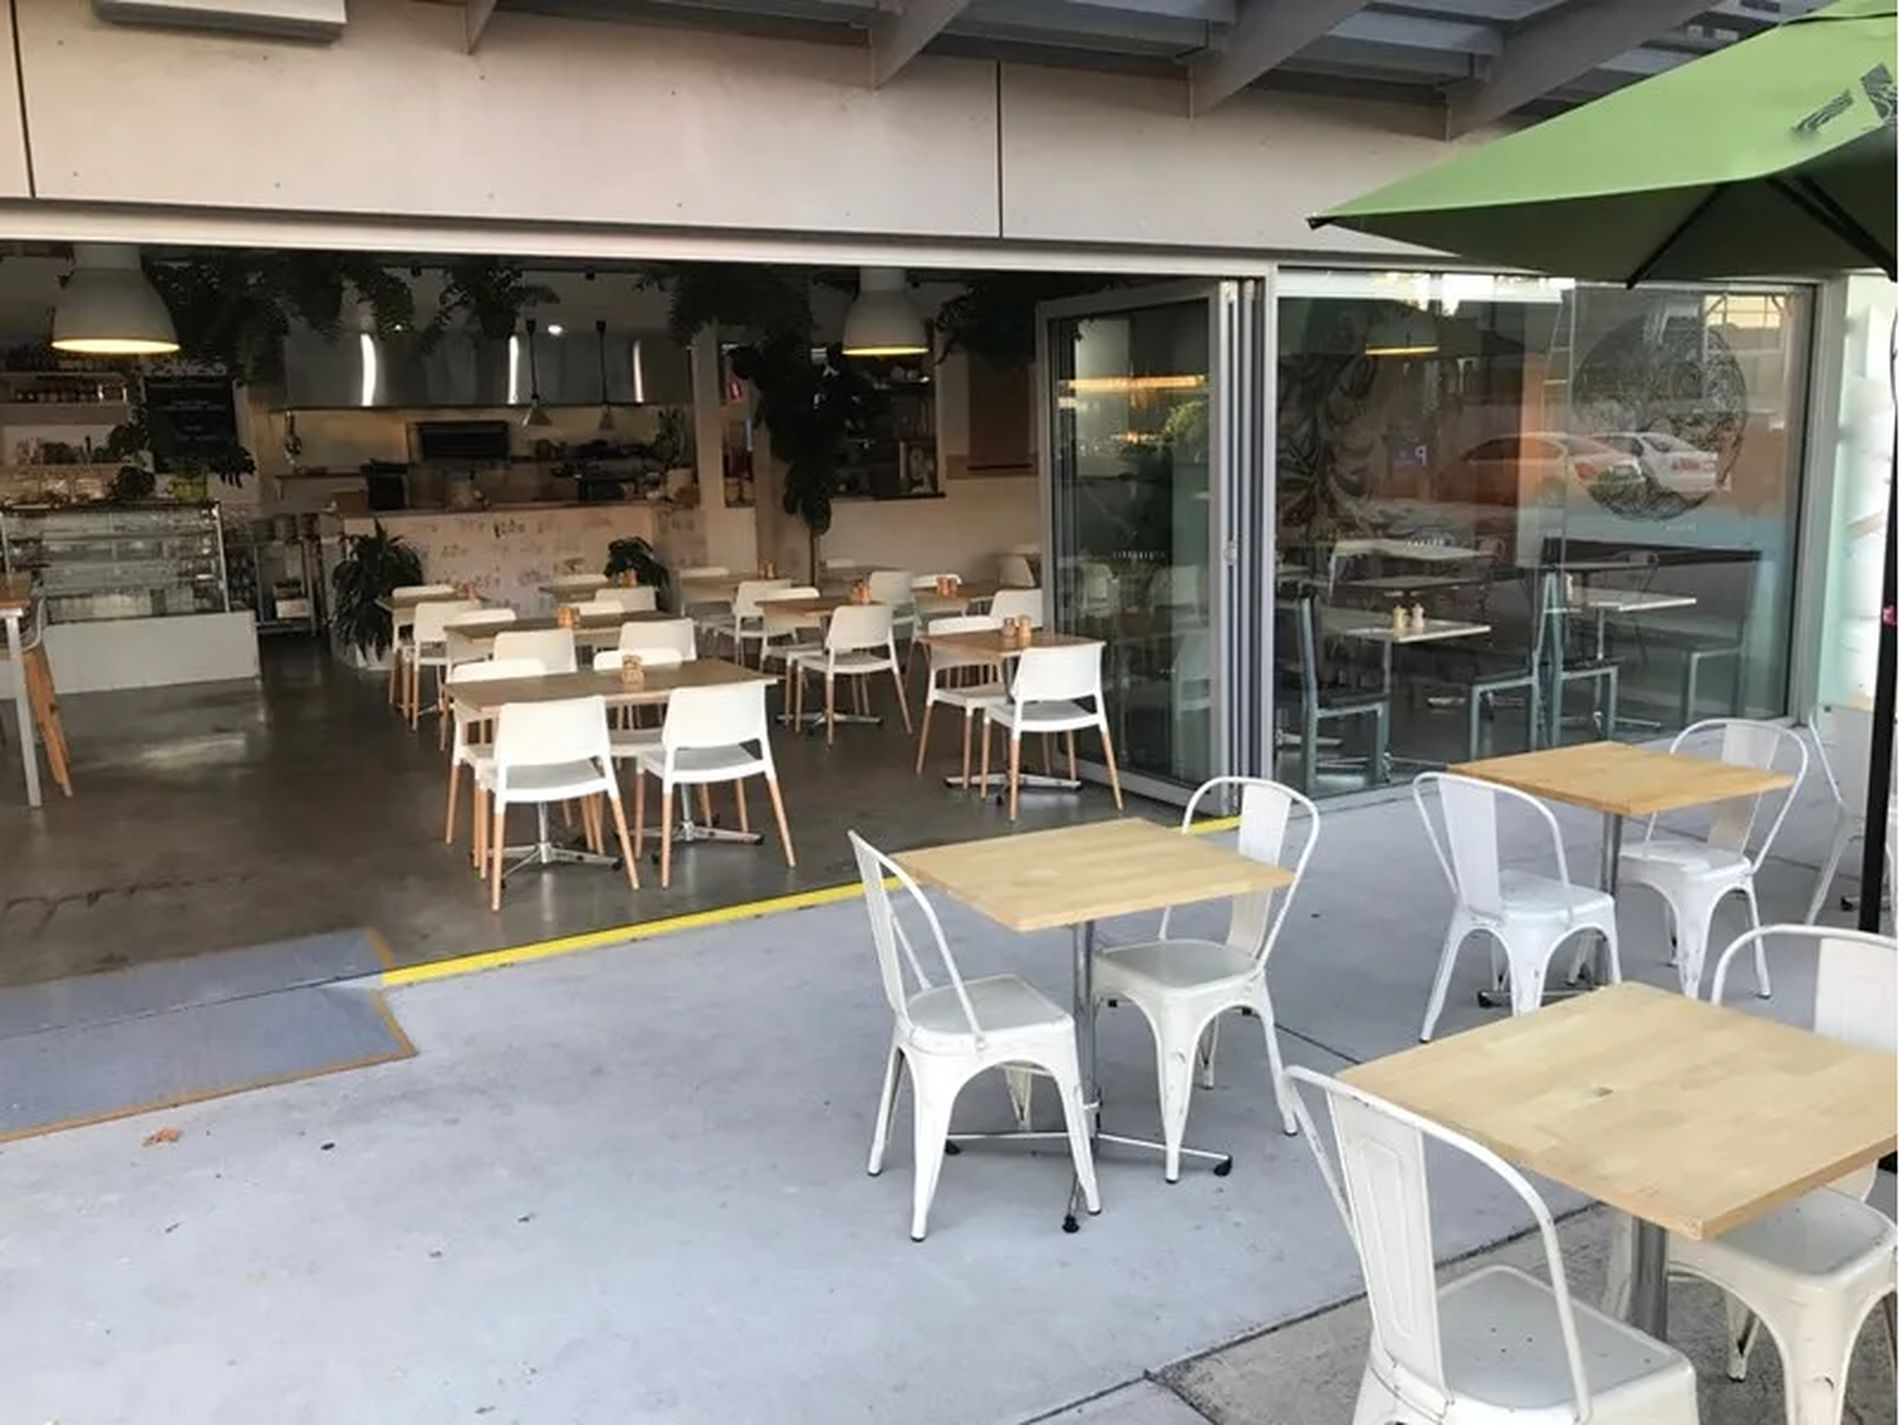 Under Offer - Cafe and Takeaway Business for Sale Caulfield